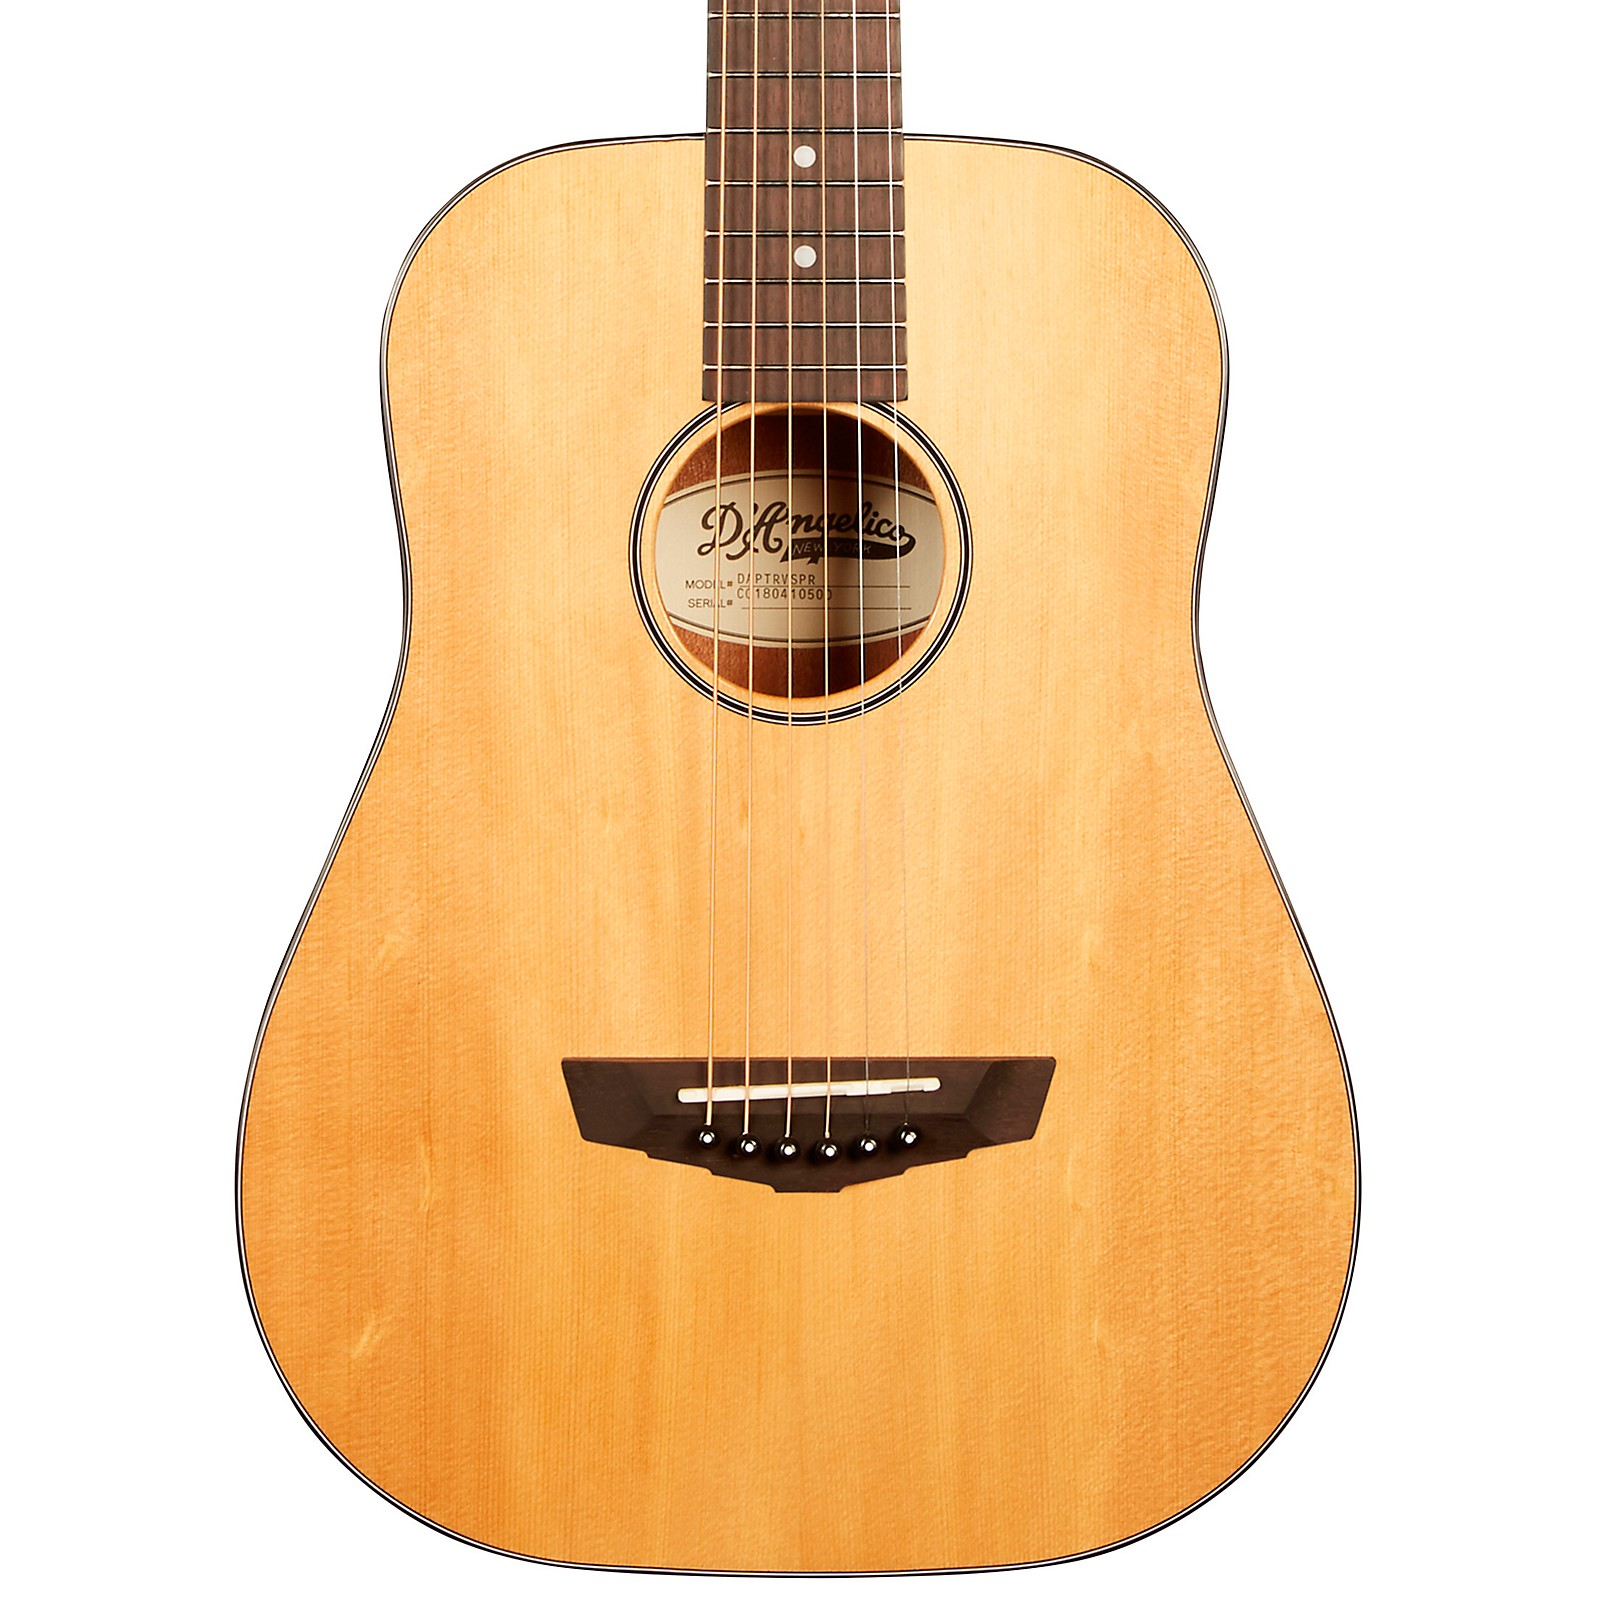 Open Box D'Angelico Premier Series Utica Mini Acoustic Guitar With Spruce Top